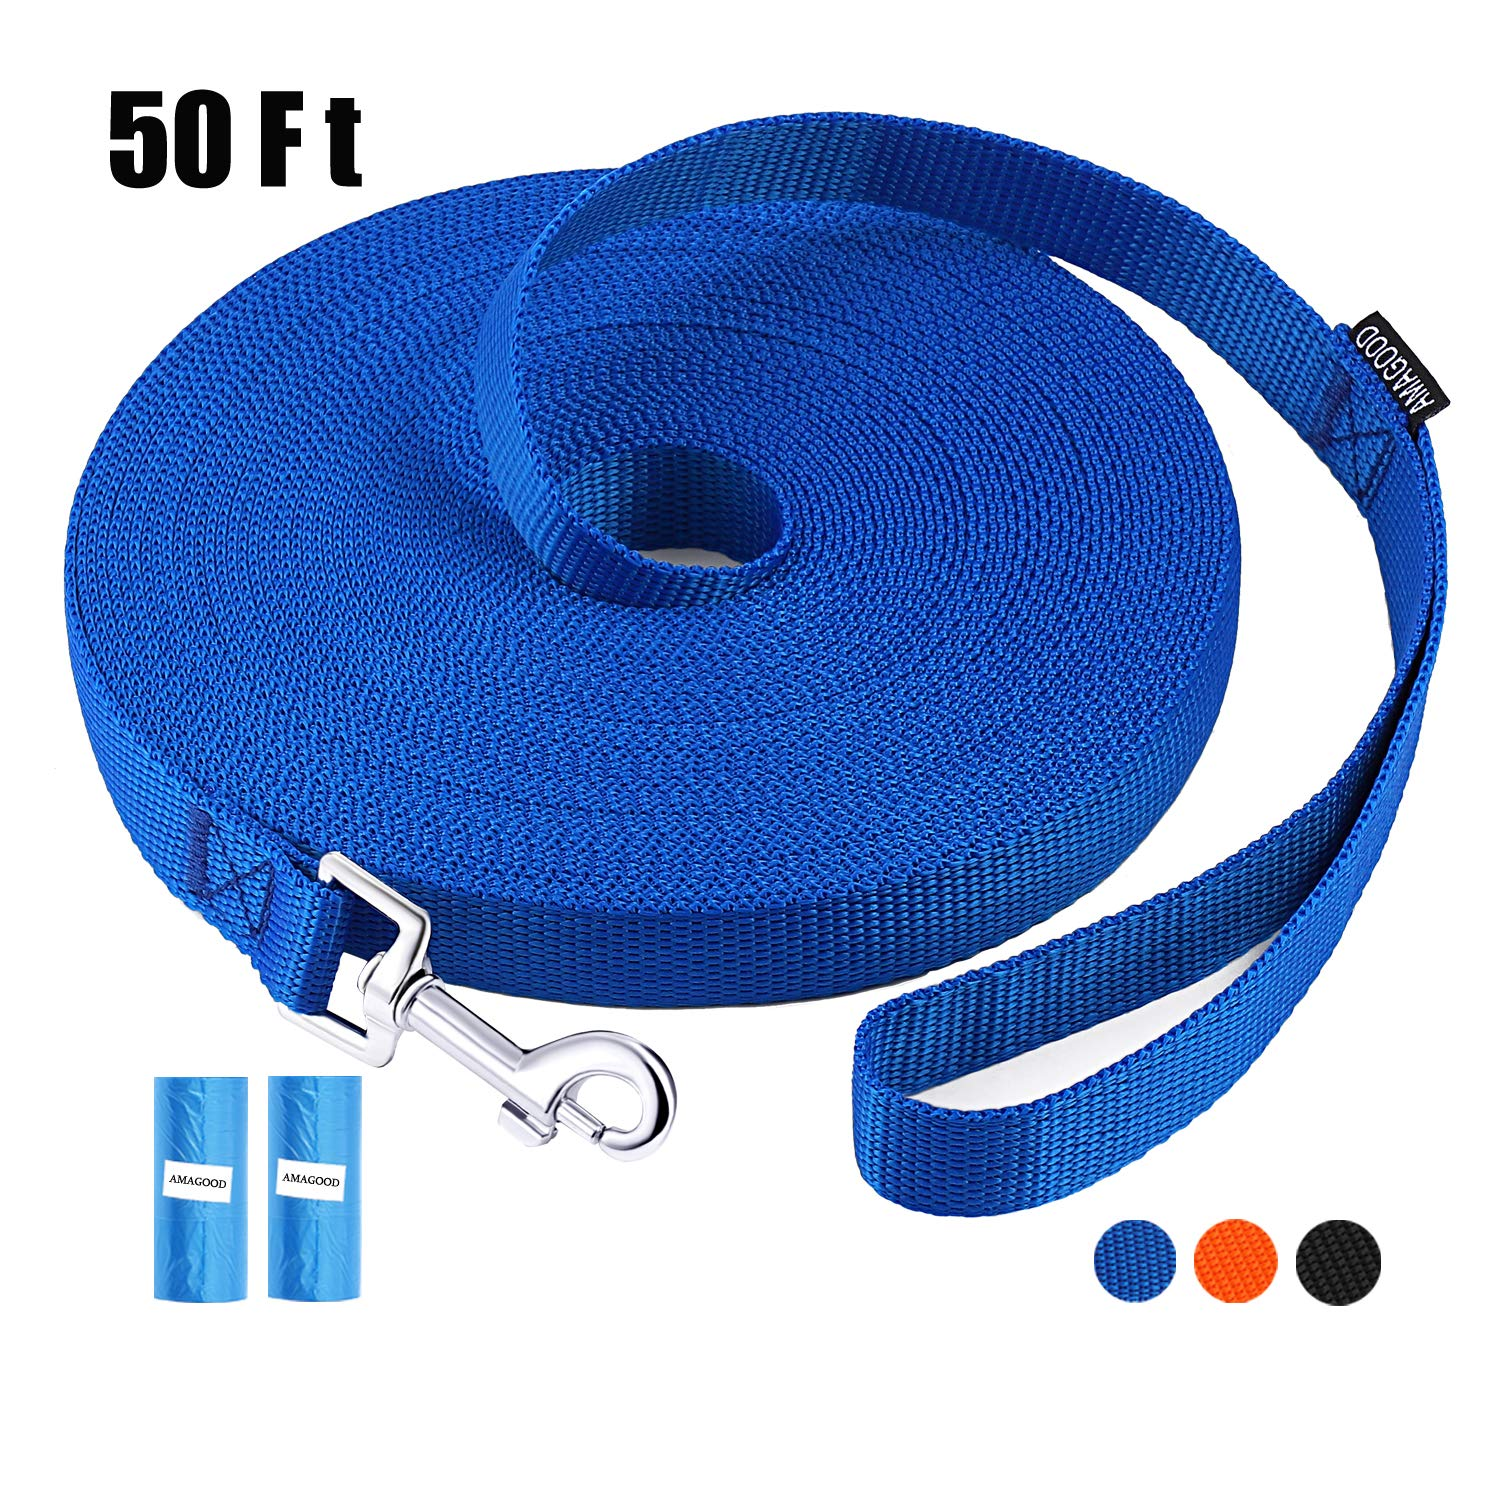 AMAGOOD Dog/Puppy Obedience Recall Training Agility Lead-15 ft 20 ft 30 ft 50 ft Long Leash-for Dog Training,Tie Out,Play,Safety,Camping (50 feet, Blue) by AMAGOOD